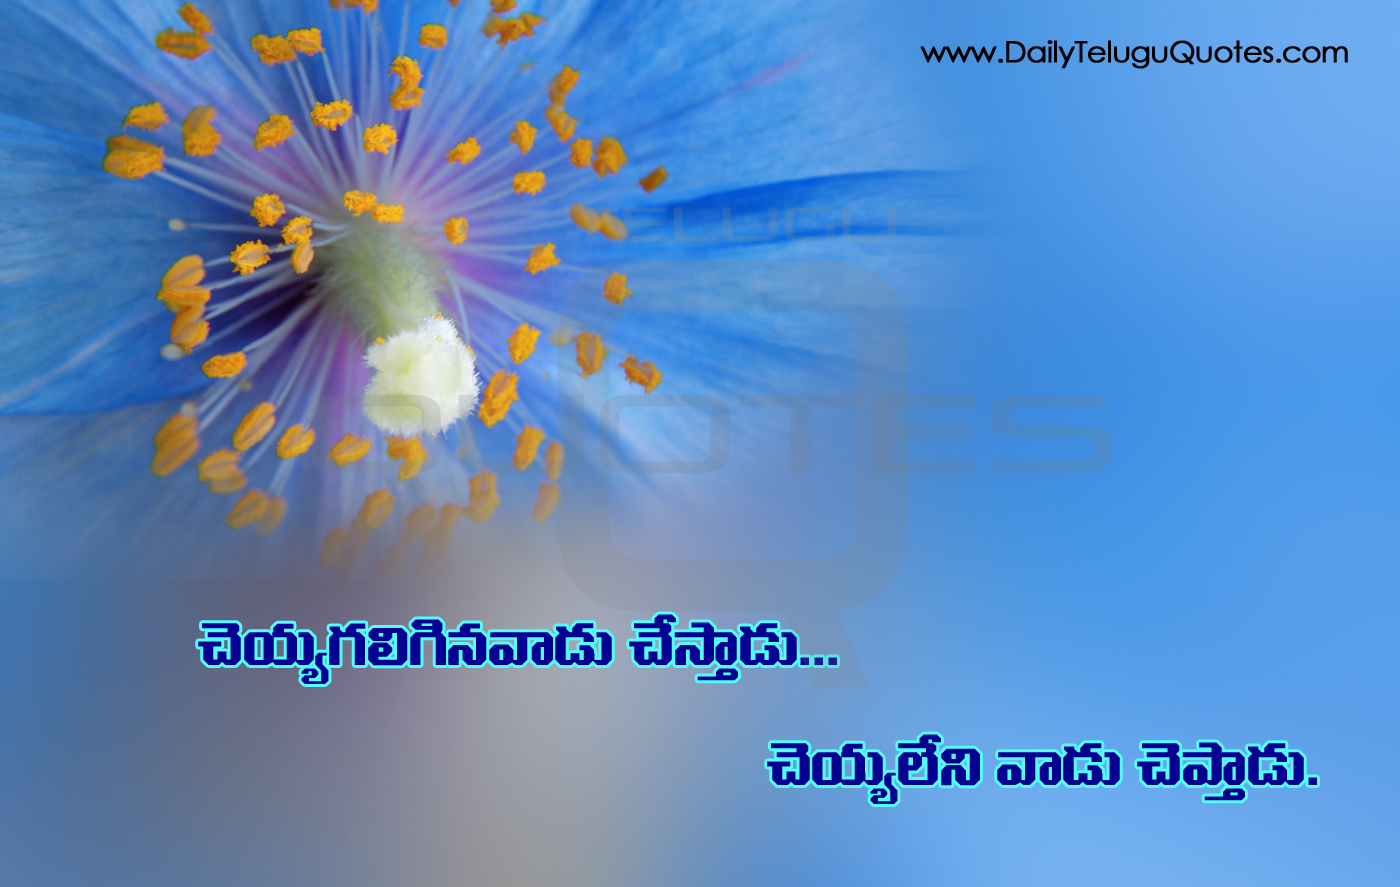 Motivational Messages Top Inspirational Life Quotes And Sayings In Telugu Wallpapers